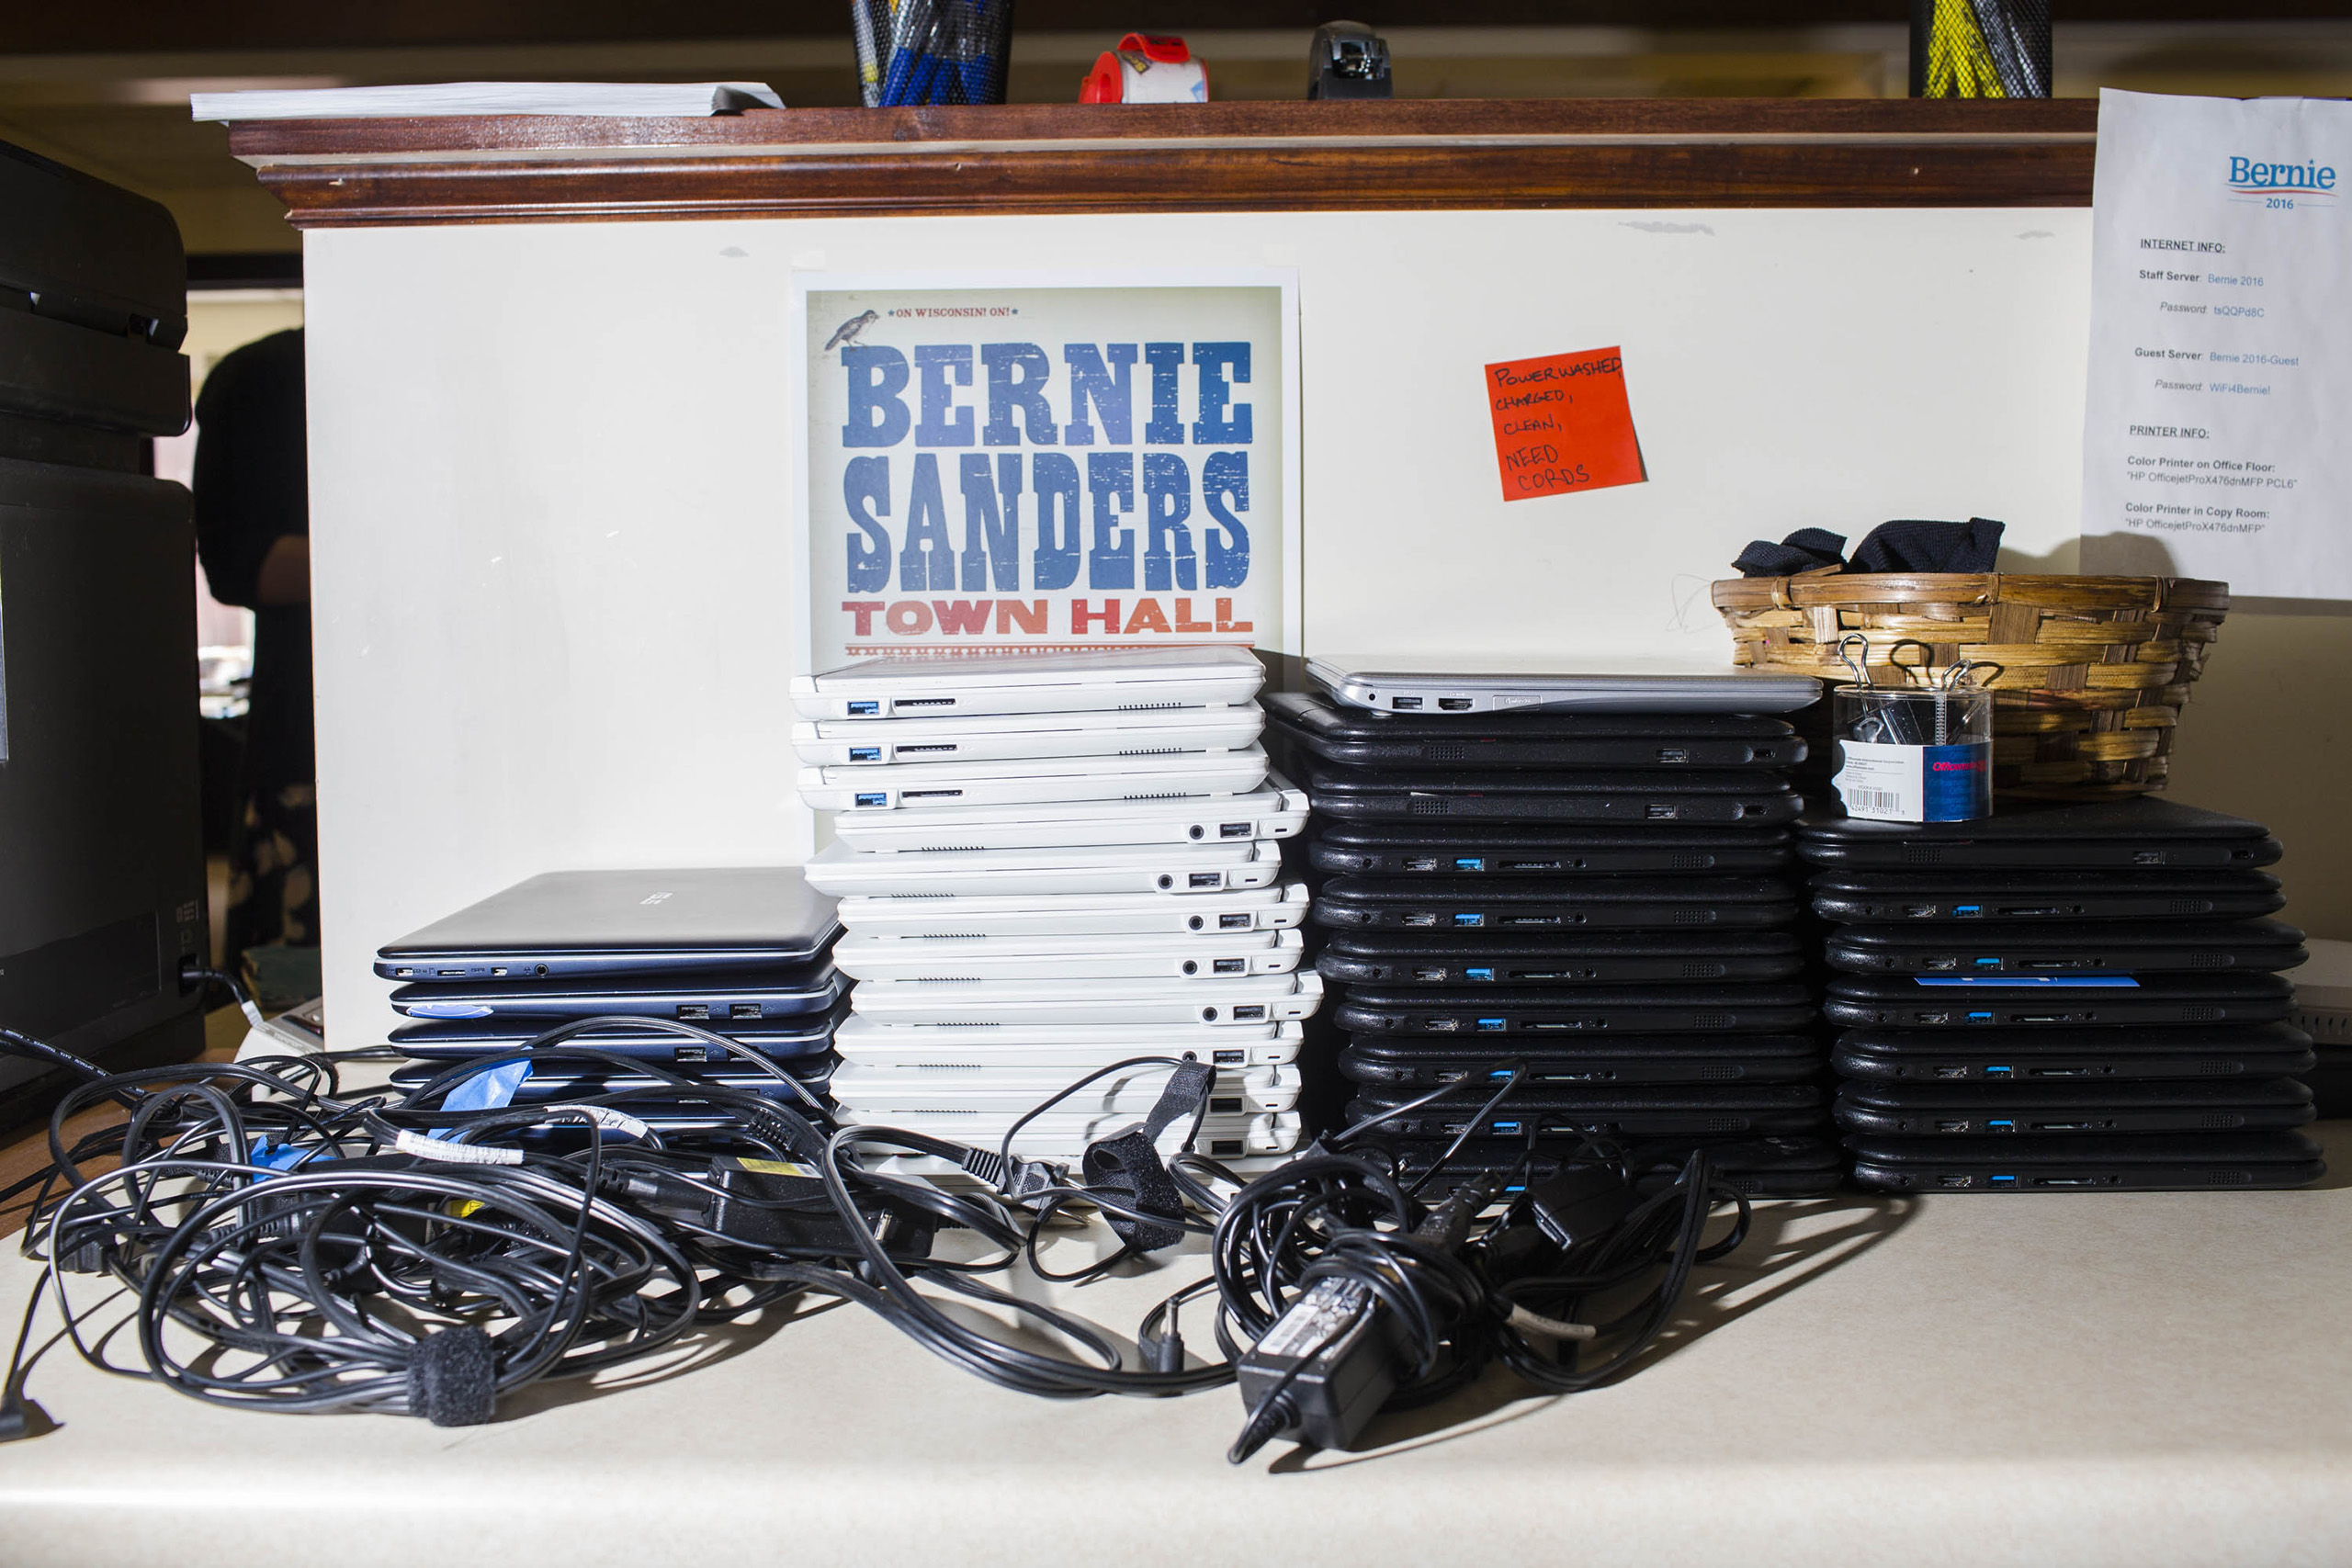 A stack of laptops for workers inside the campaign headquarters of Bernie Sanders on May 23, 2016, in Burlington, VT.